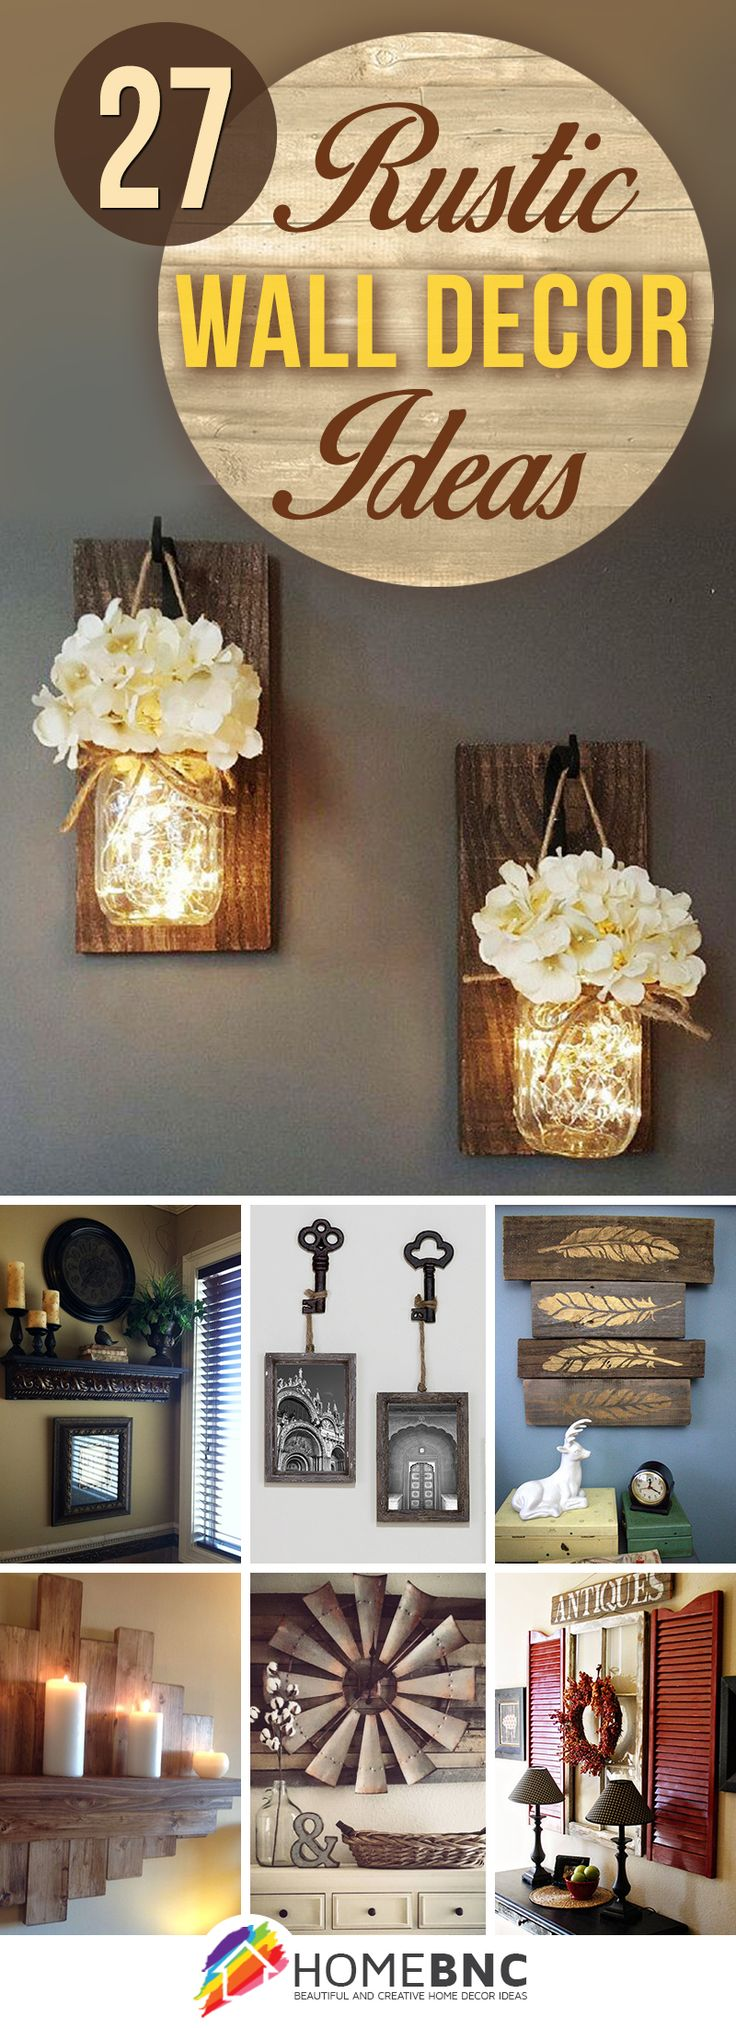 25 best rustic living decor ideas on pinterest wooden corner 27 rustic wall decor ideas to turn shabby into fabulous